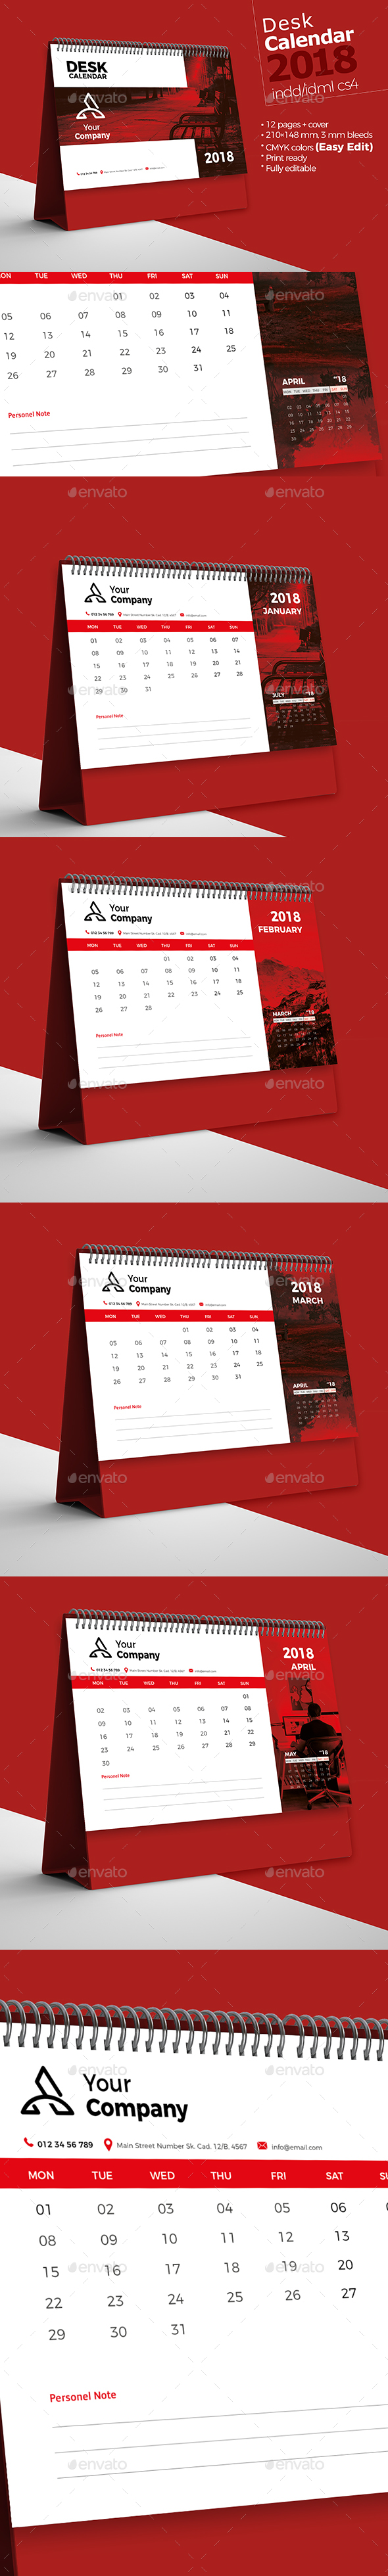 GraphicRiver Desk Calendar 2018 21025842